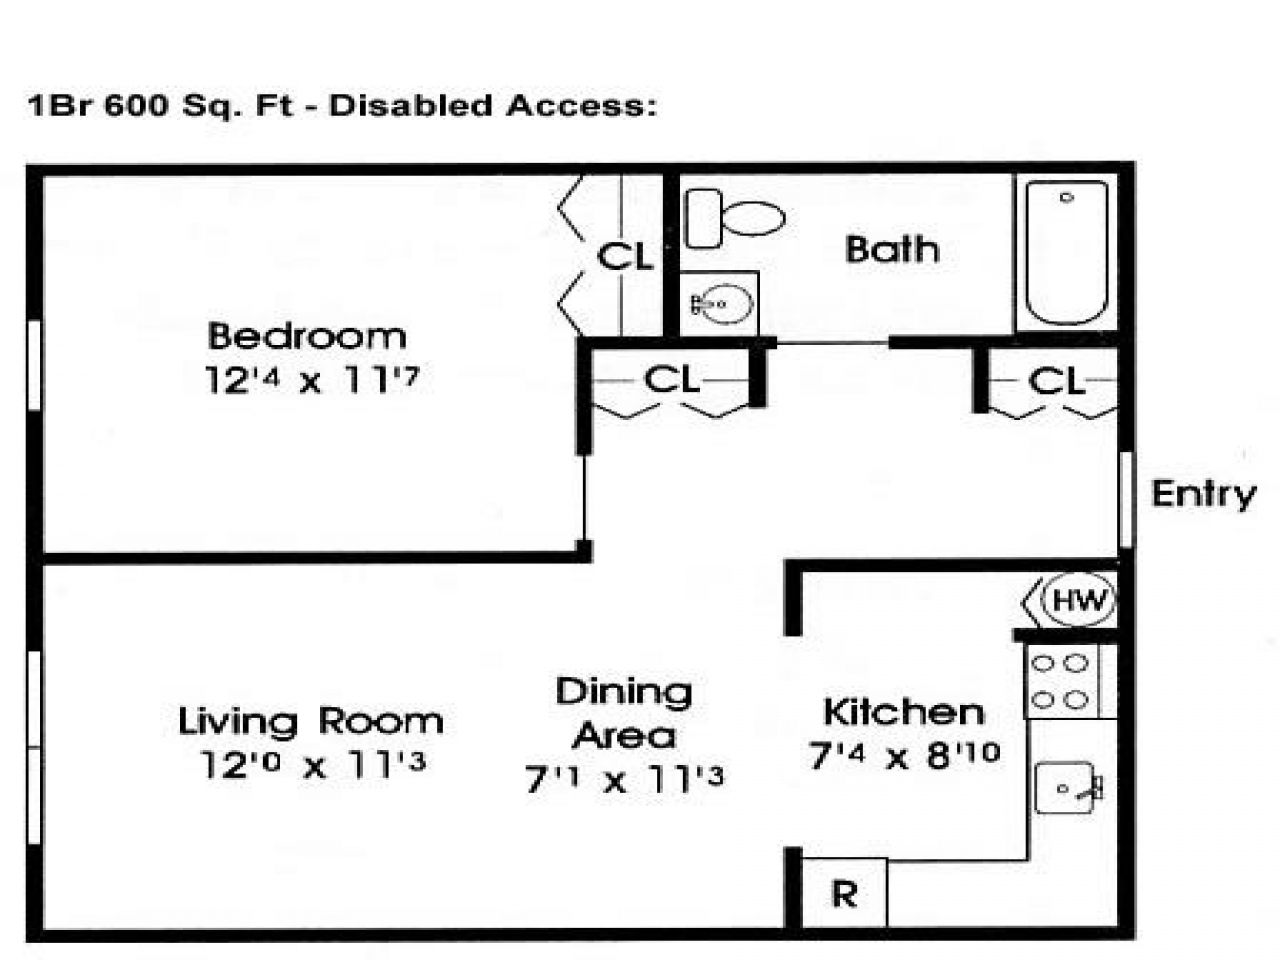 600 Sq Ft Home Floor Plans 600 Sf Home Floor Plans 600 Square Foot House Plans